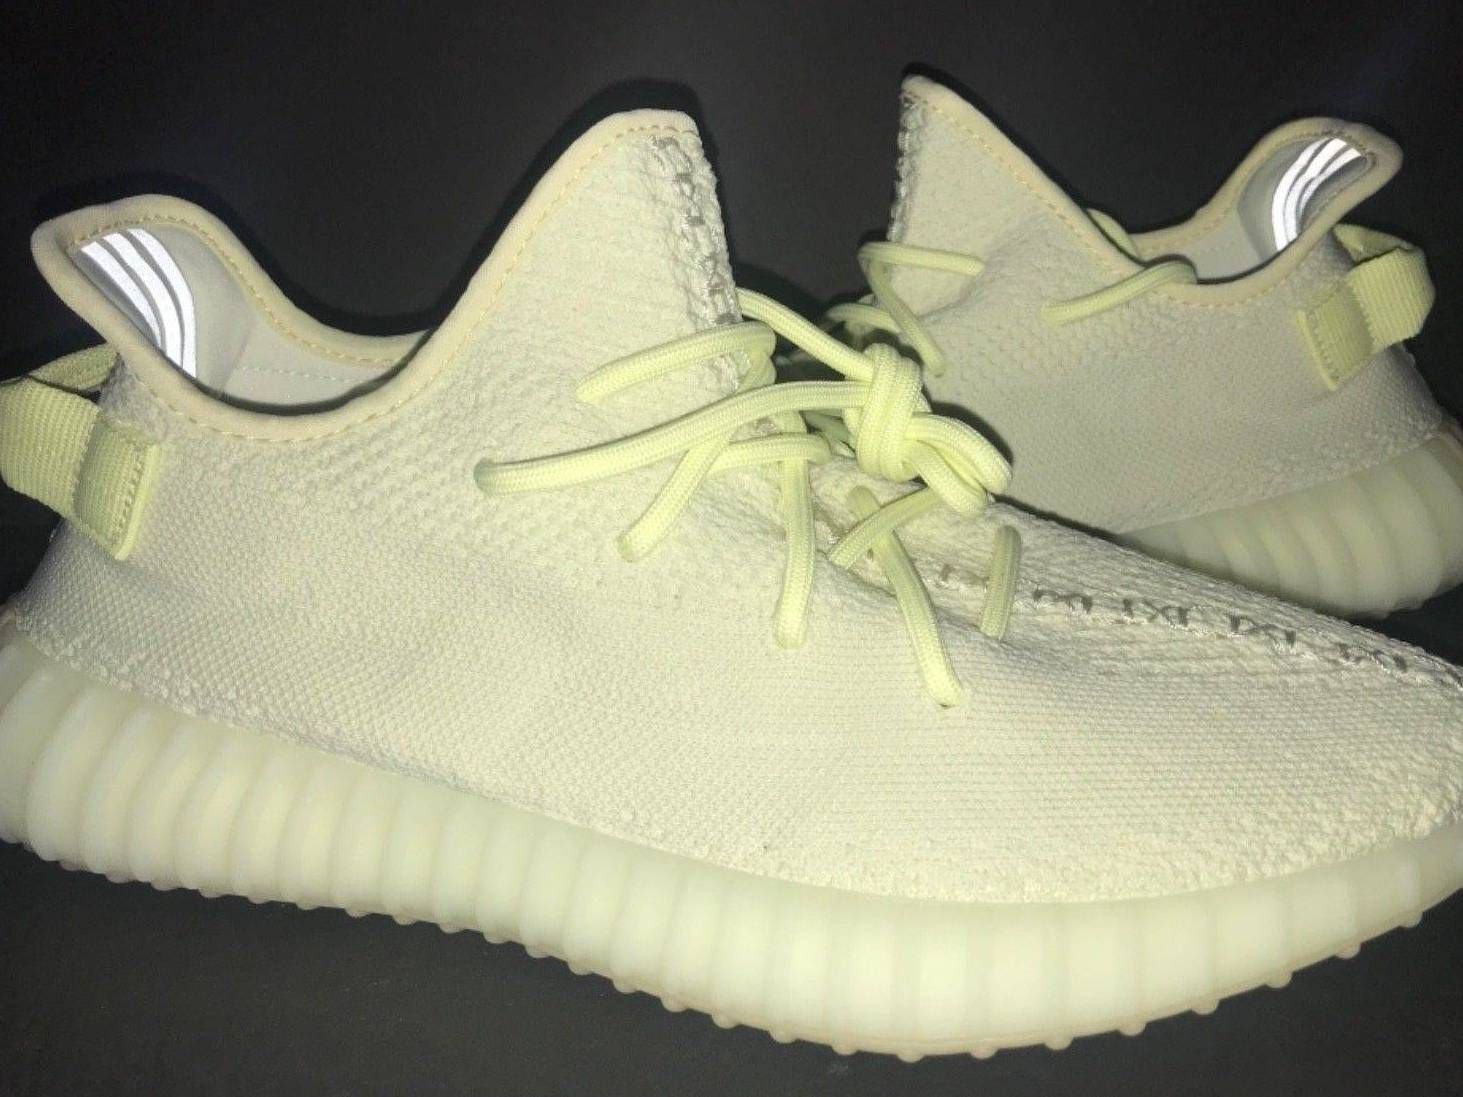 6eb1e02c5ec5 NEW DS Adidas Yeezy Boost 350 V2 Butter F36980 Kanye